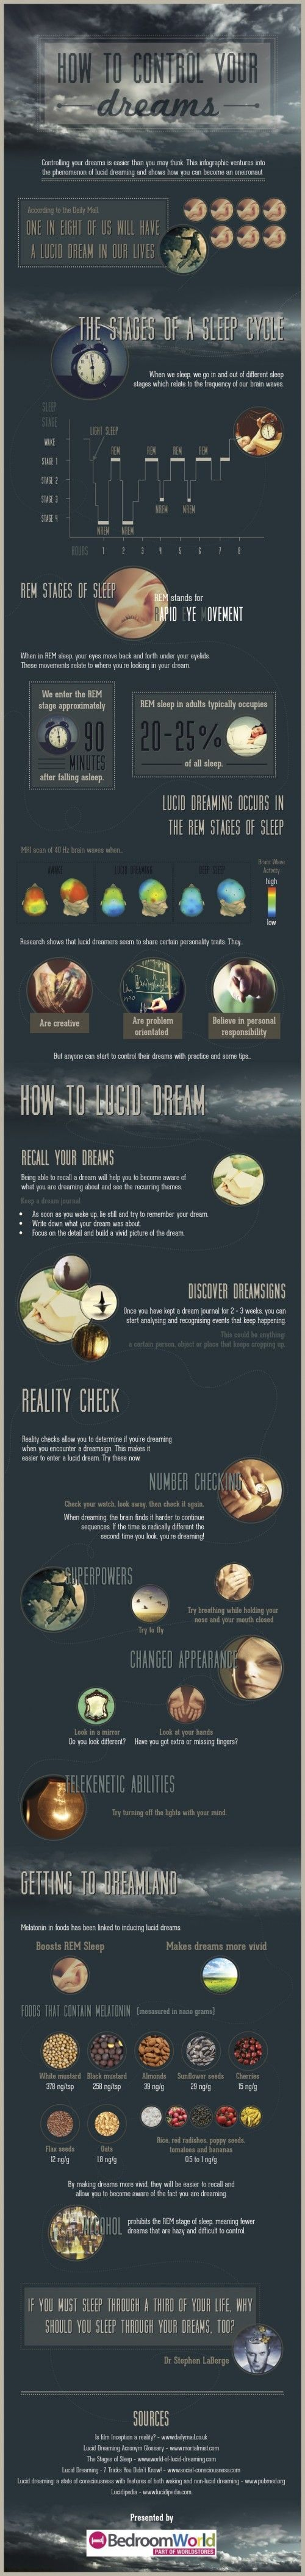 How To Control Your Dreams – Infographic on http://www.bestinfographic.co.uk